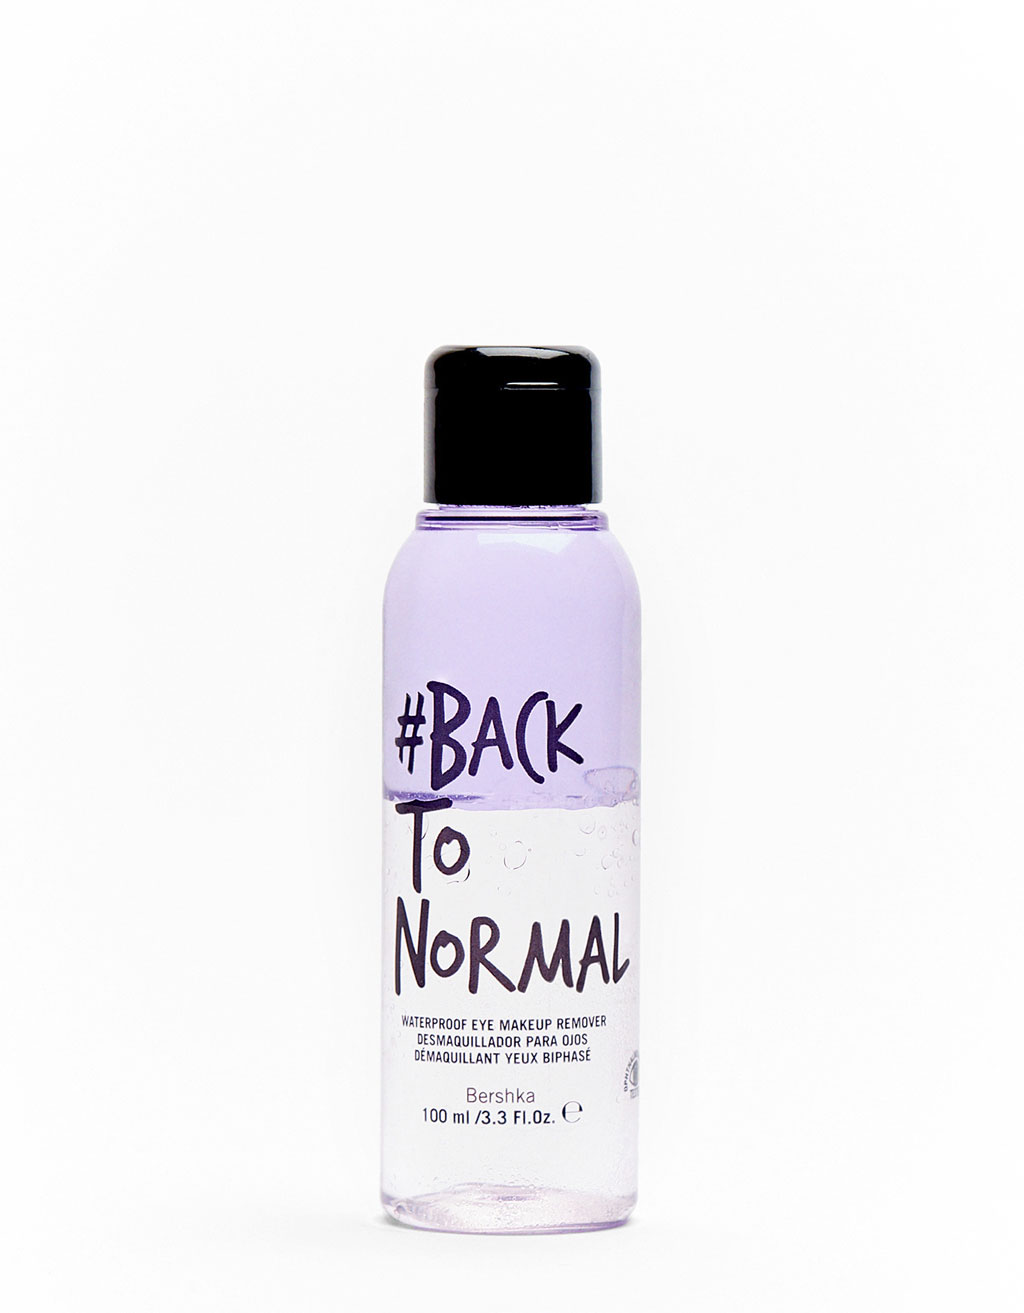 #backtonormal eye makeup remover